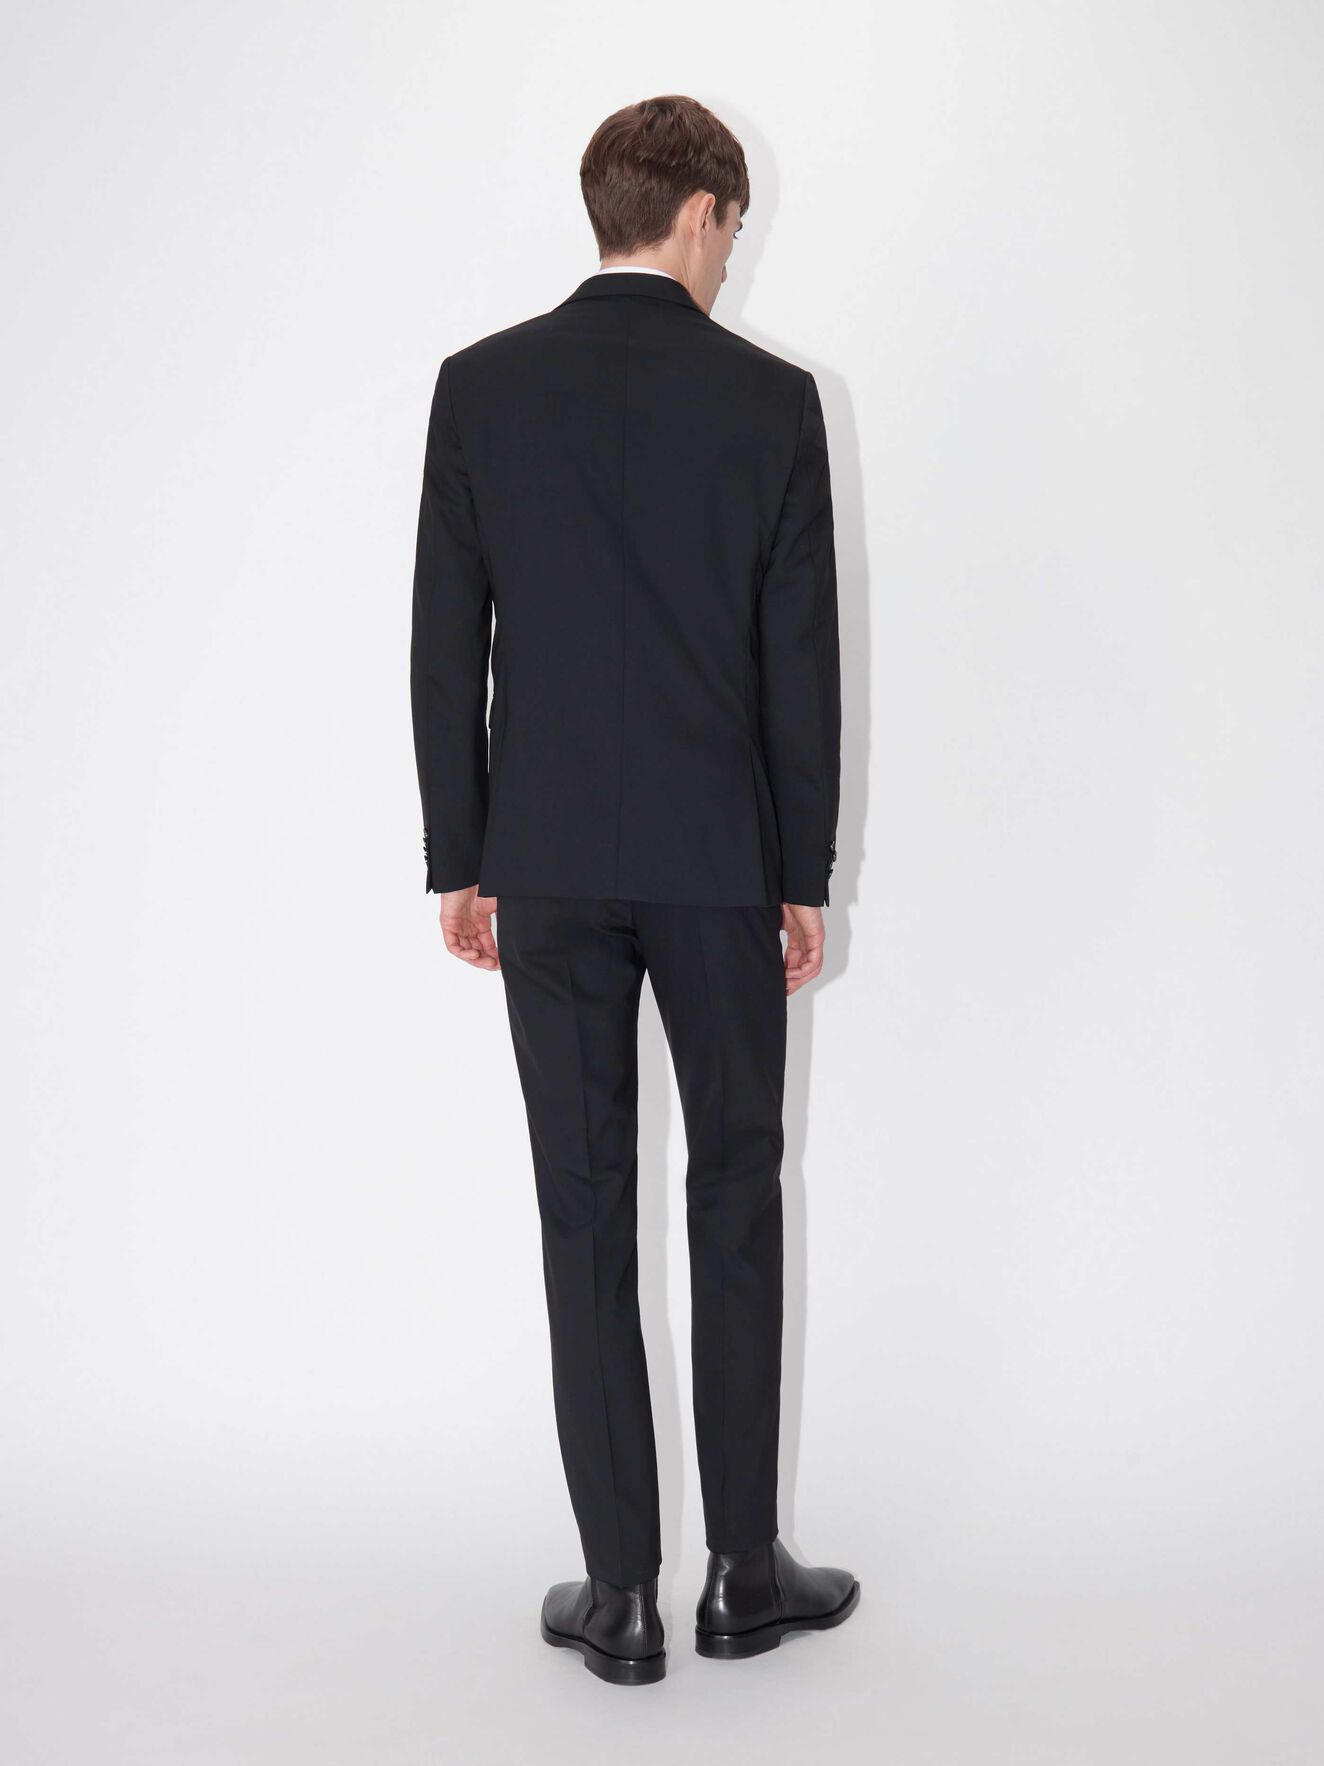 Henrie Blazer in Black from Tiger of Sweden